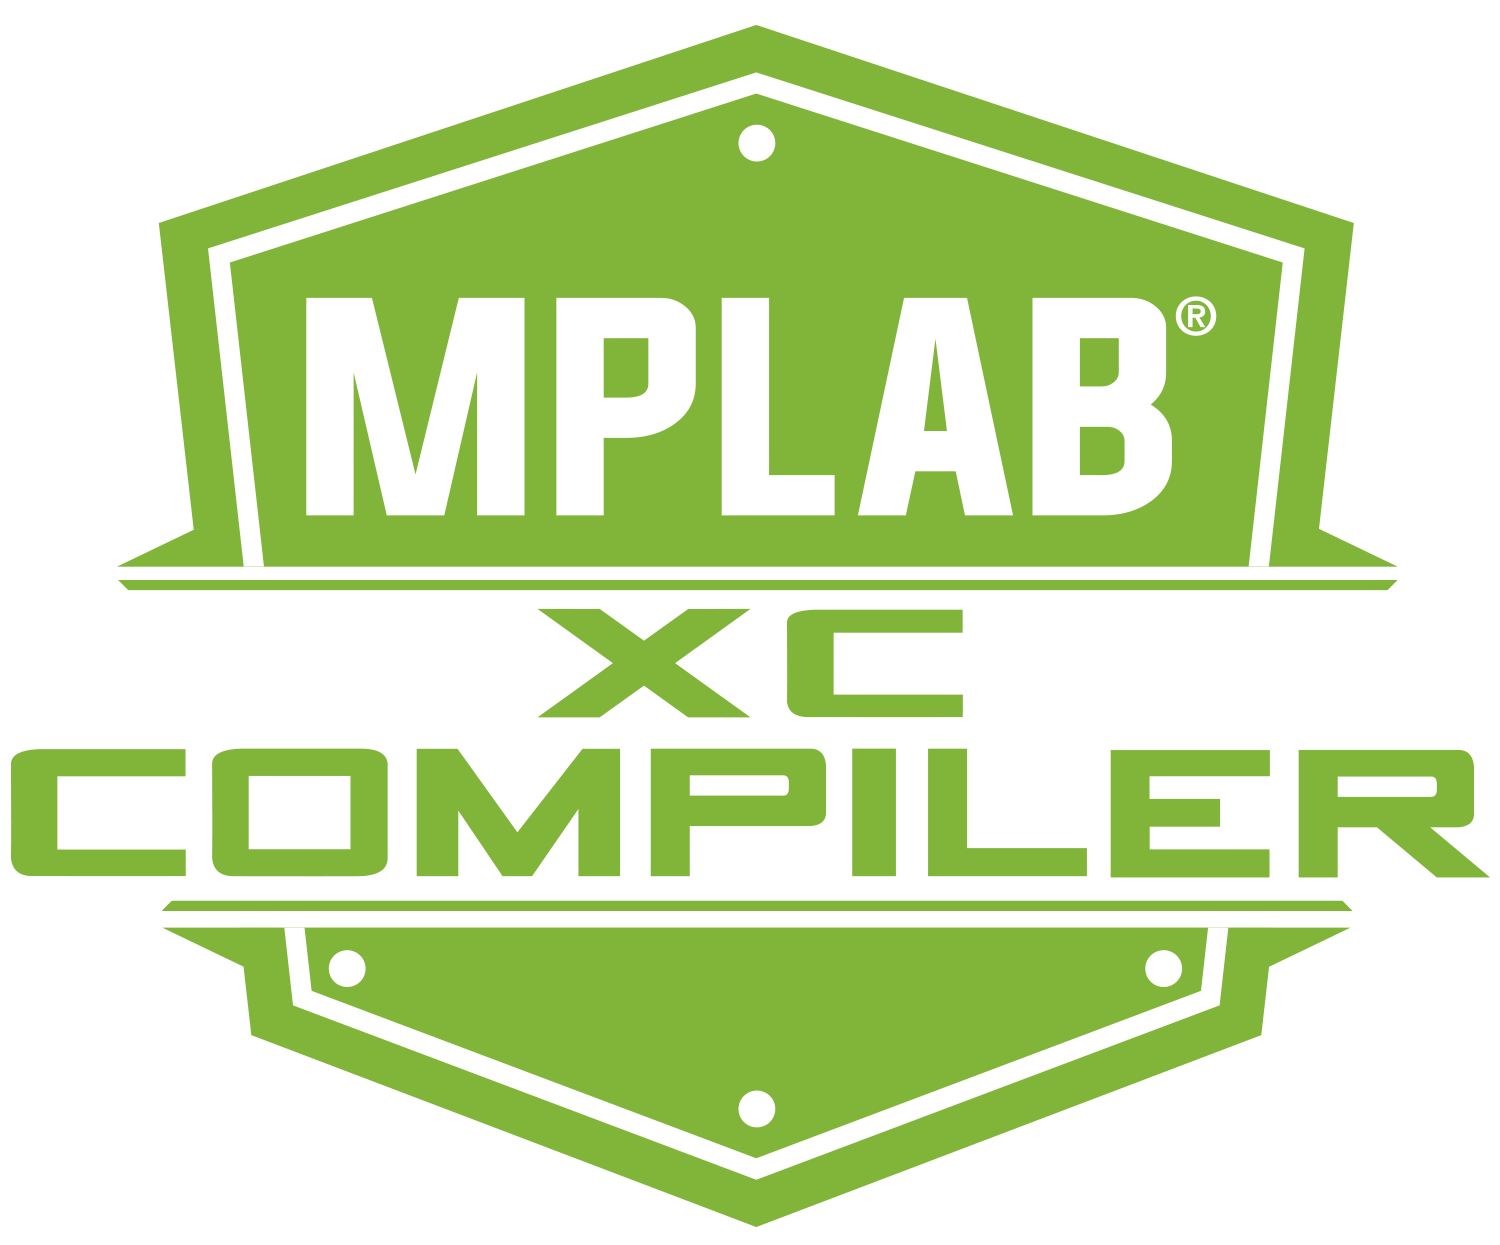 8 Reasons Why You Should Switch to MPLAB X IDE - EmbedJournal